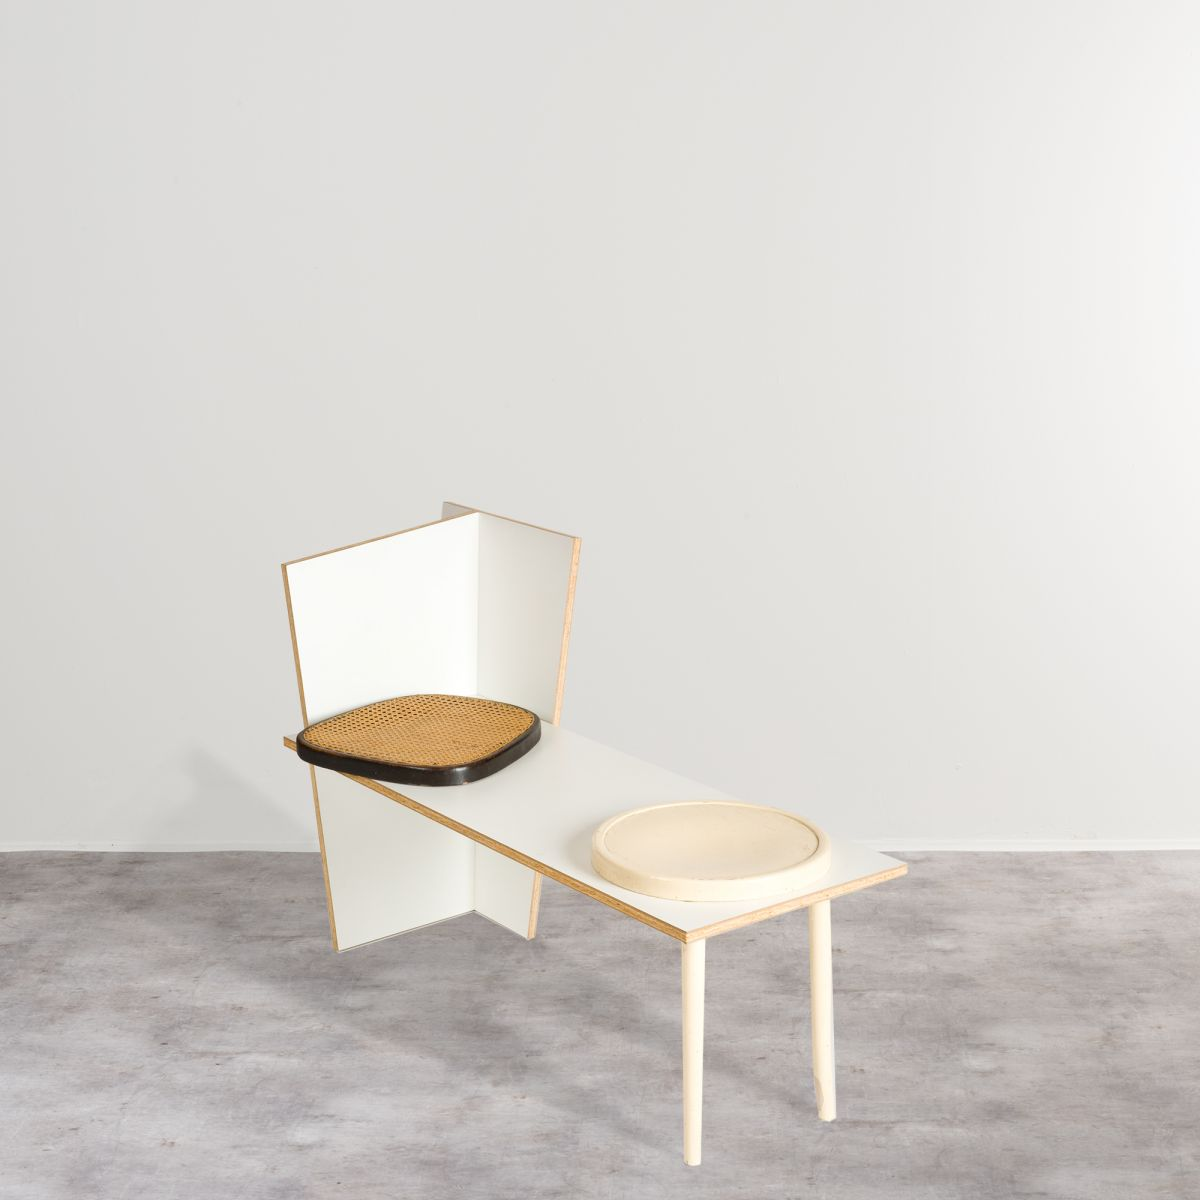 'Bench Chair' Martino Gamper pic-1